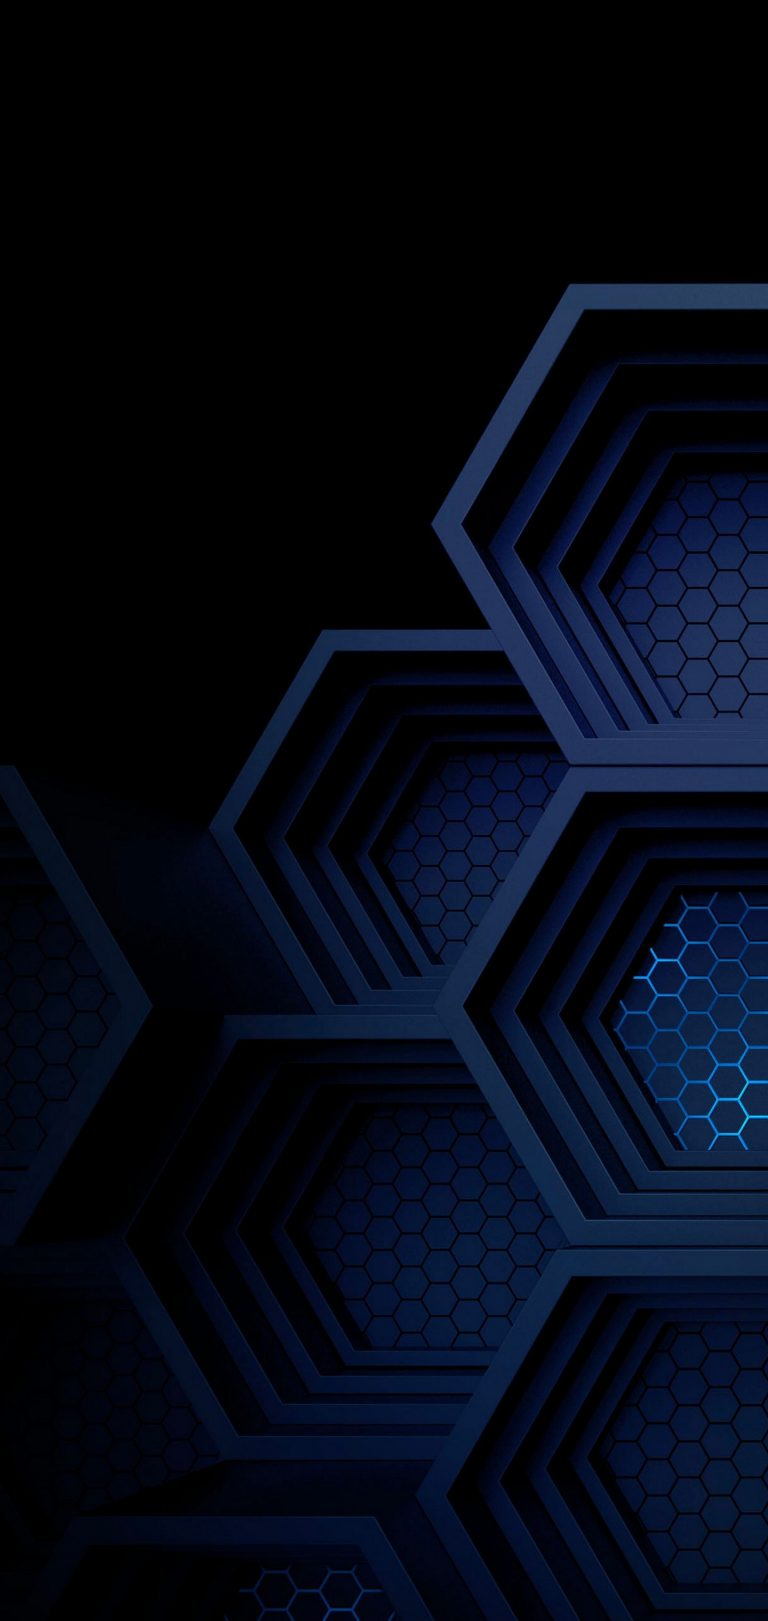 Dark Blue Boxes 3D Abstract Wallpaper 1440x3040 768x1621